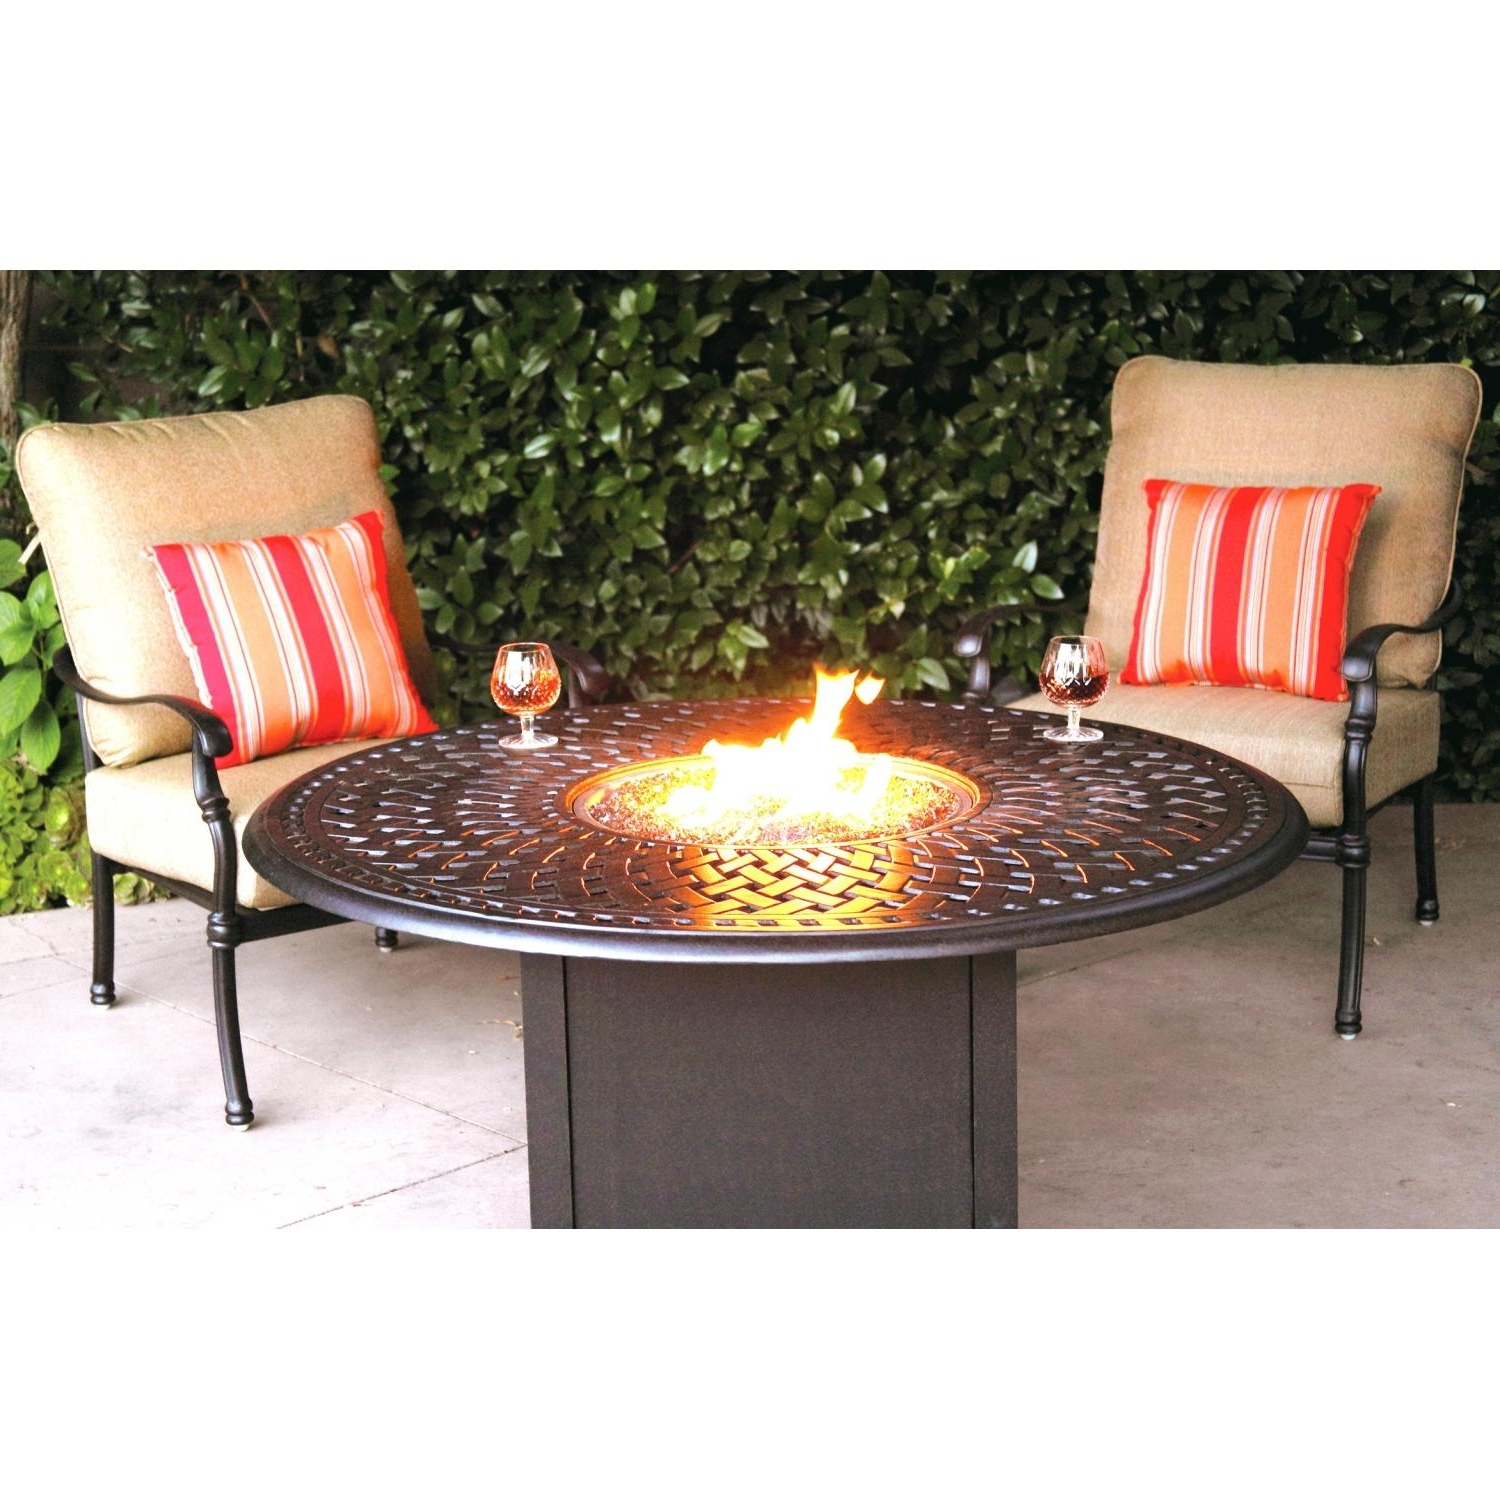 Patio Conversation Sets With Gas Fire Pit With Regard To Well Known Darlee Florence 3 Piece Aluminum Patio Fire Pit Seating Set (View 12 of 15)